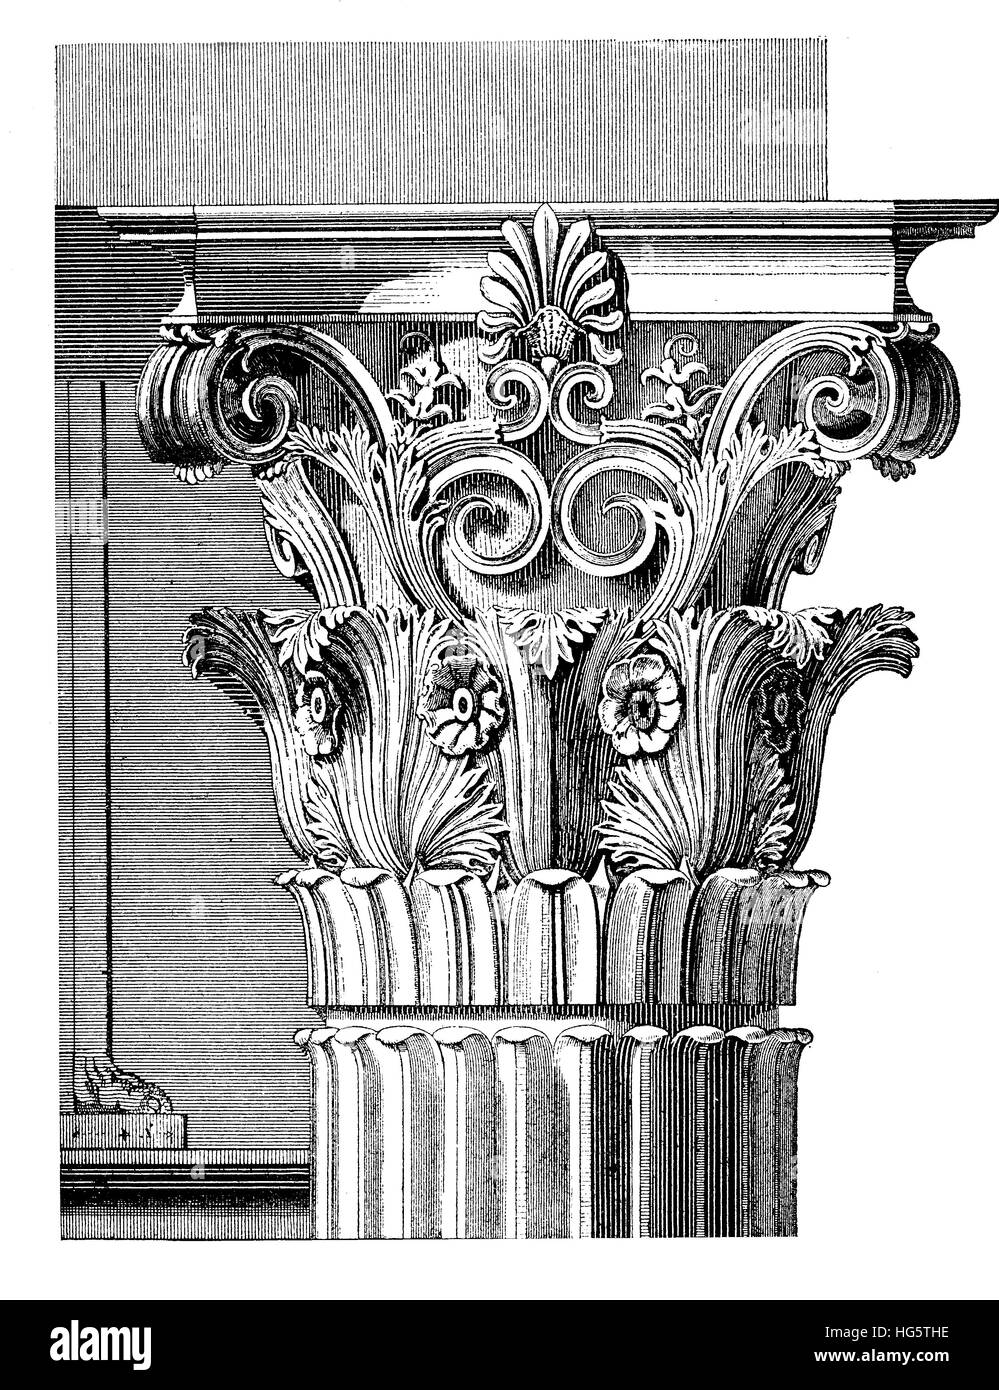 Architectural detail, elaborated Corinthian capital with acanthus leaves and scrolls,vintage engraving. Corinthian Stock Photo